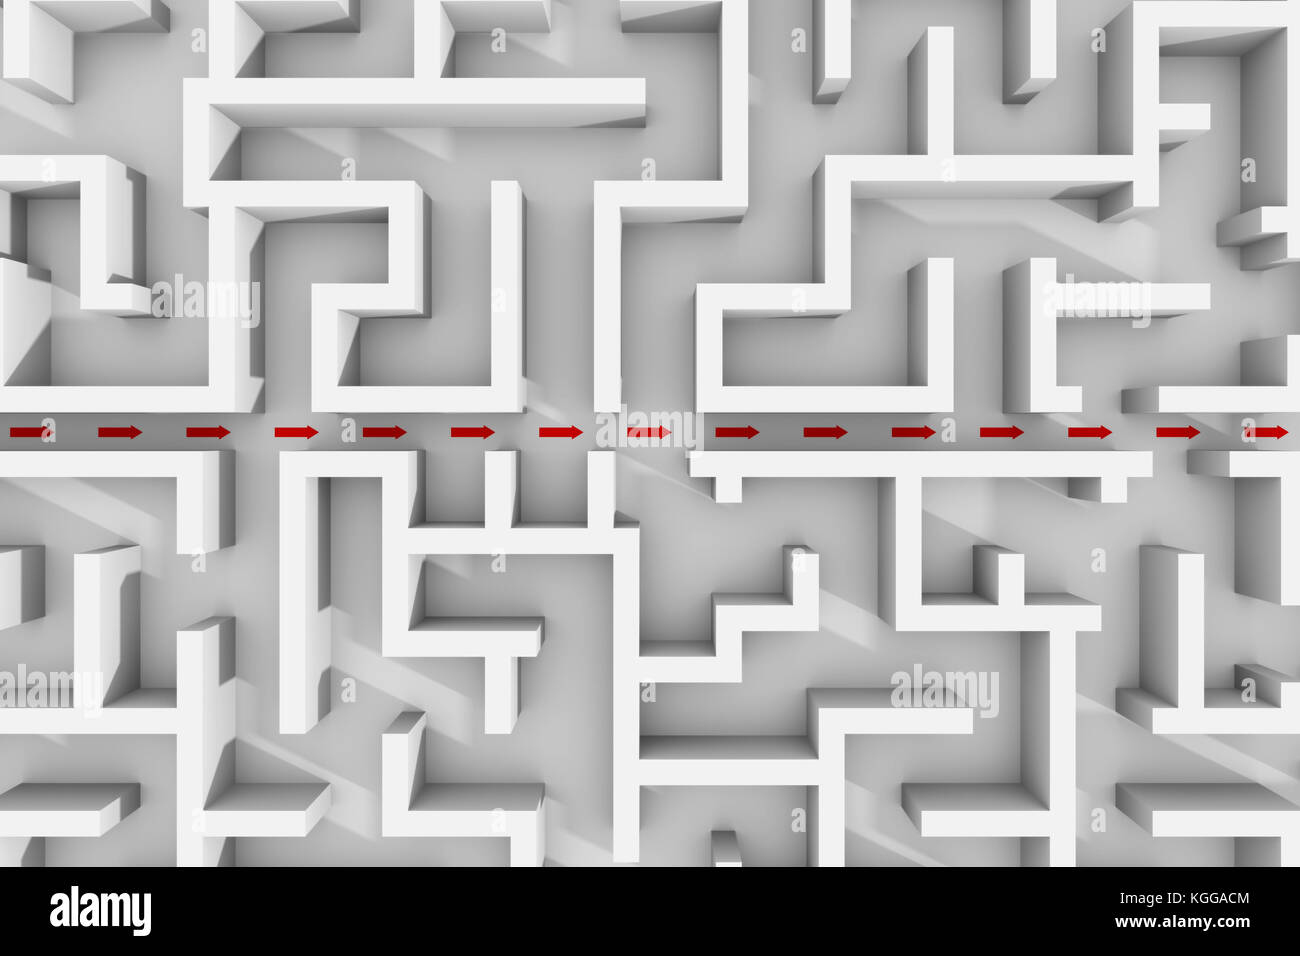 white maze structure, red arrows showing shortcut through the labyrinth garden (3d illustration) Stock Photo